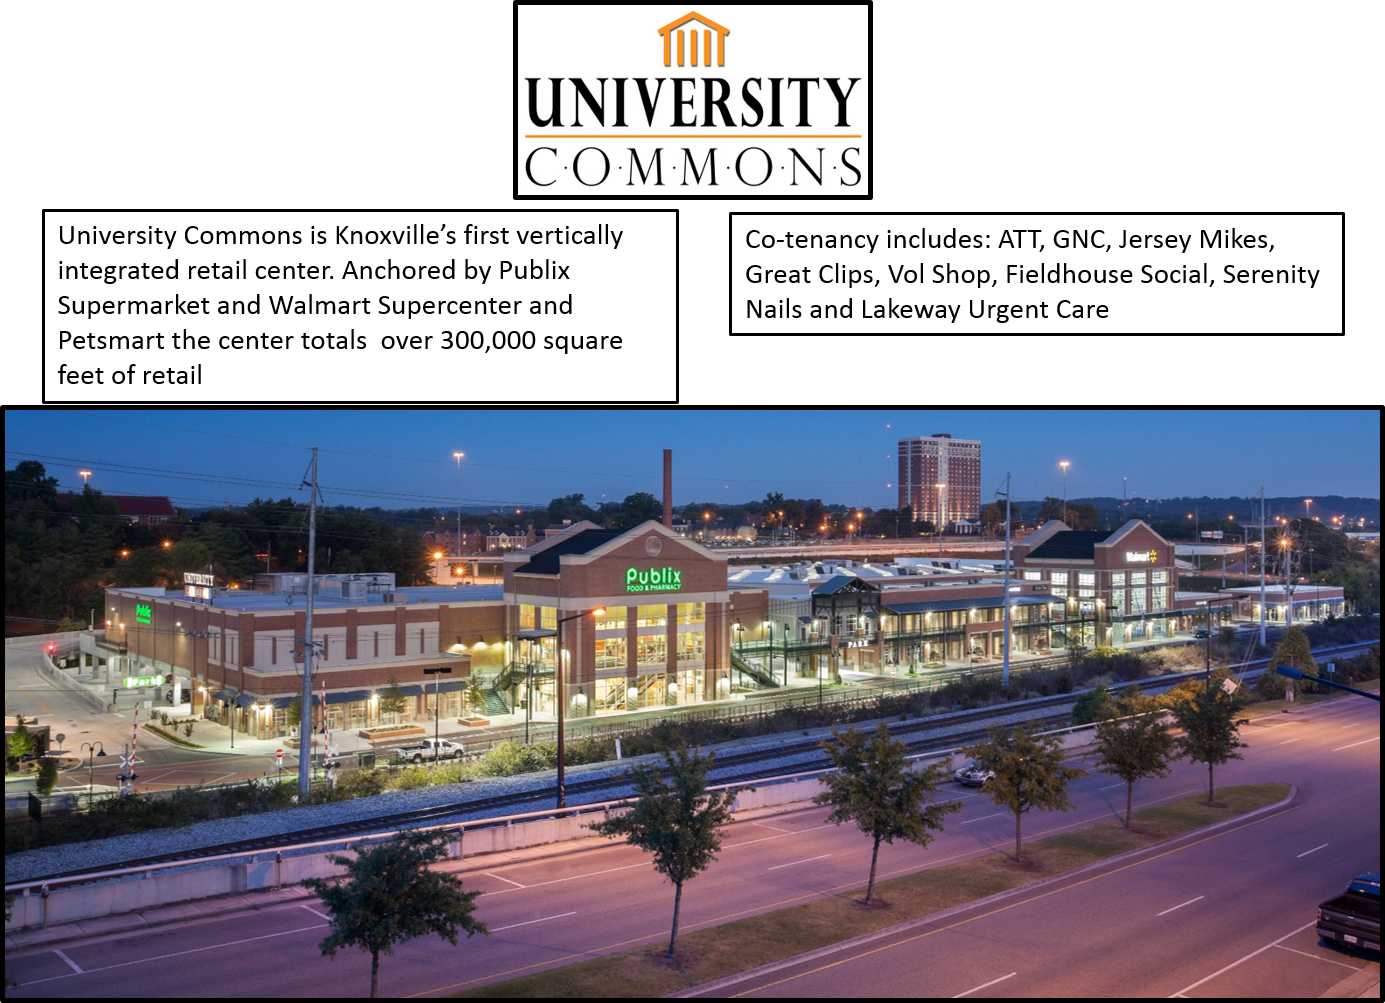 2501 University Commons Way Knoxville, TN 37996- Suite 2469 - Retail Space  for Lease